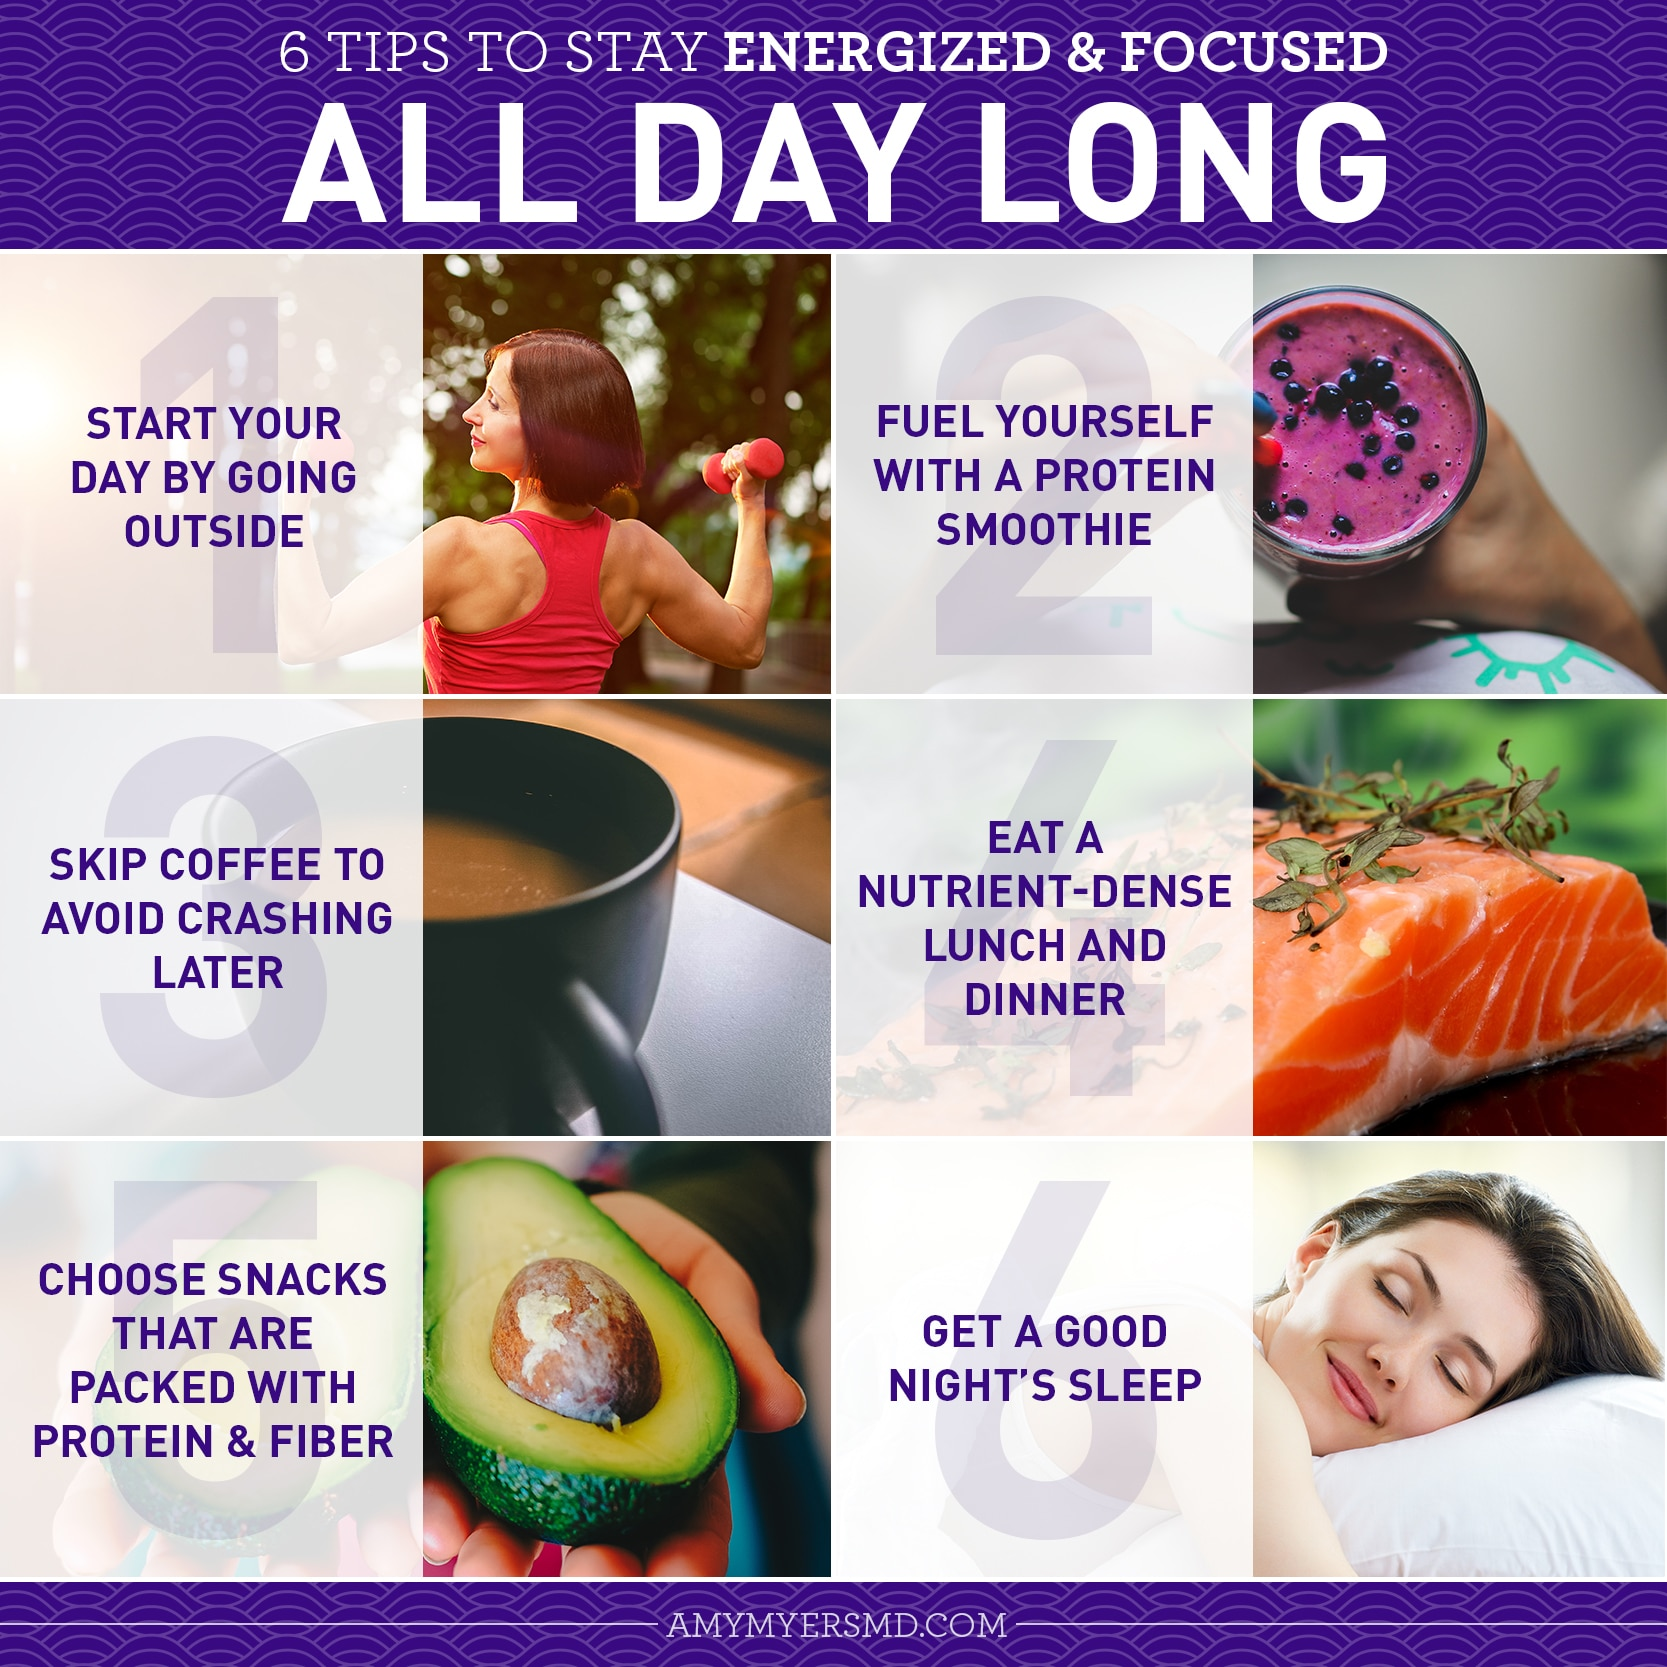 6 Tips to Stay Energized and Focused All Day Long - Infographic - Amy Myers MD